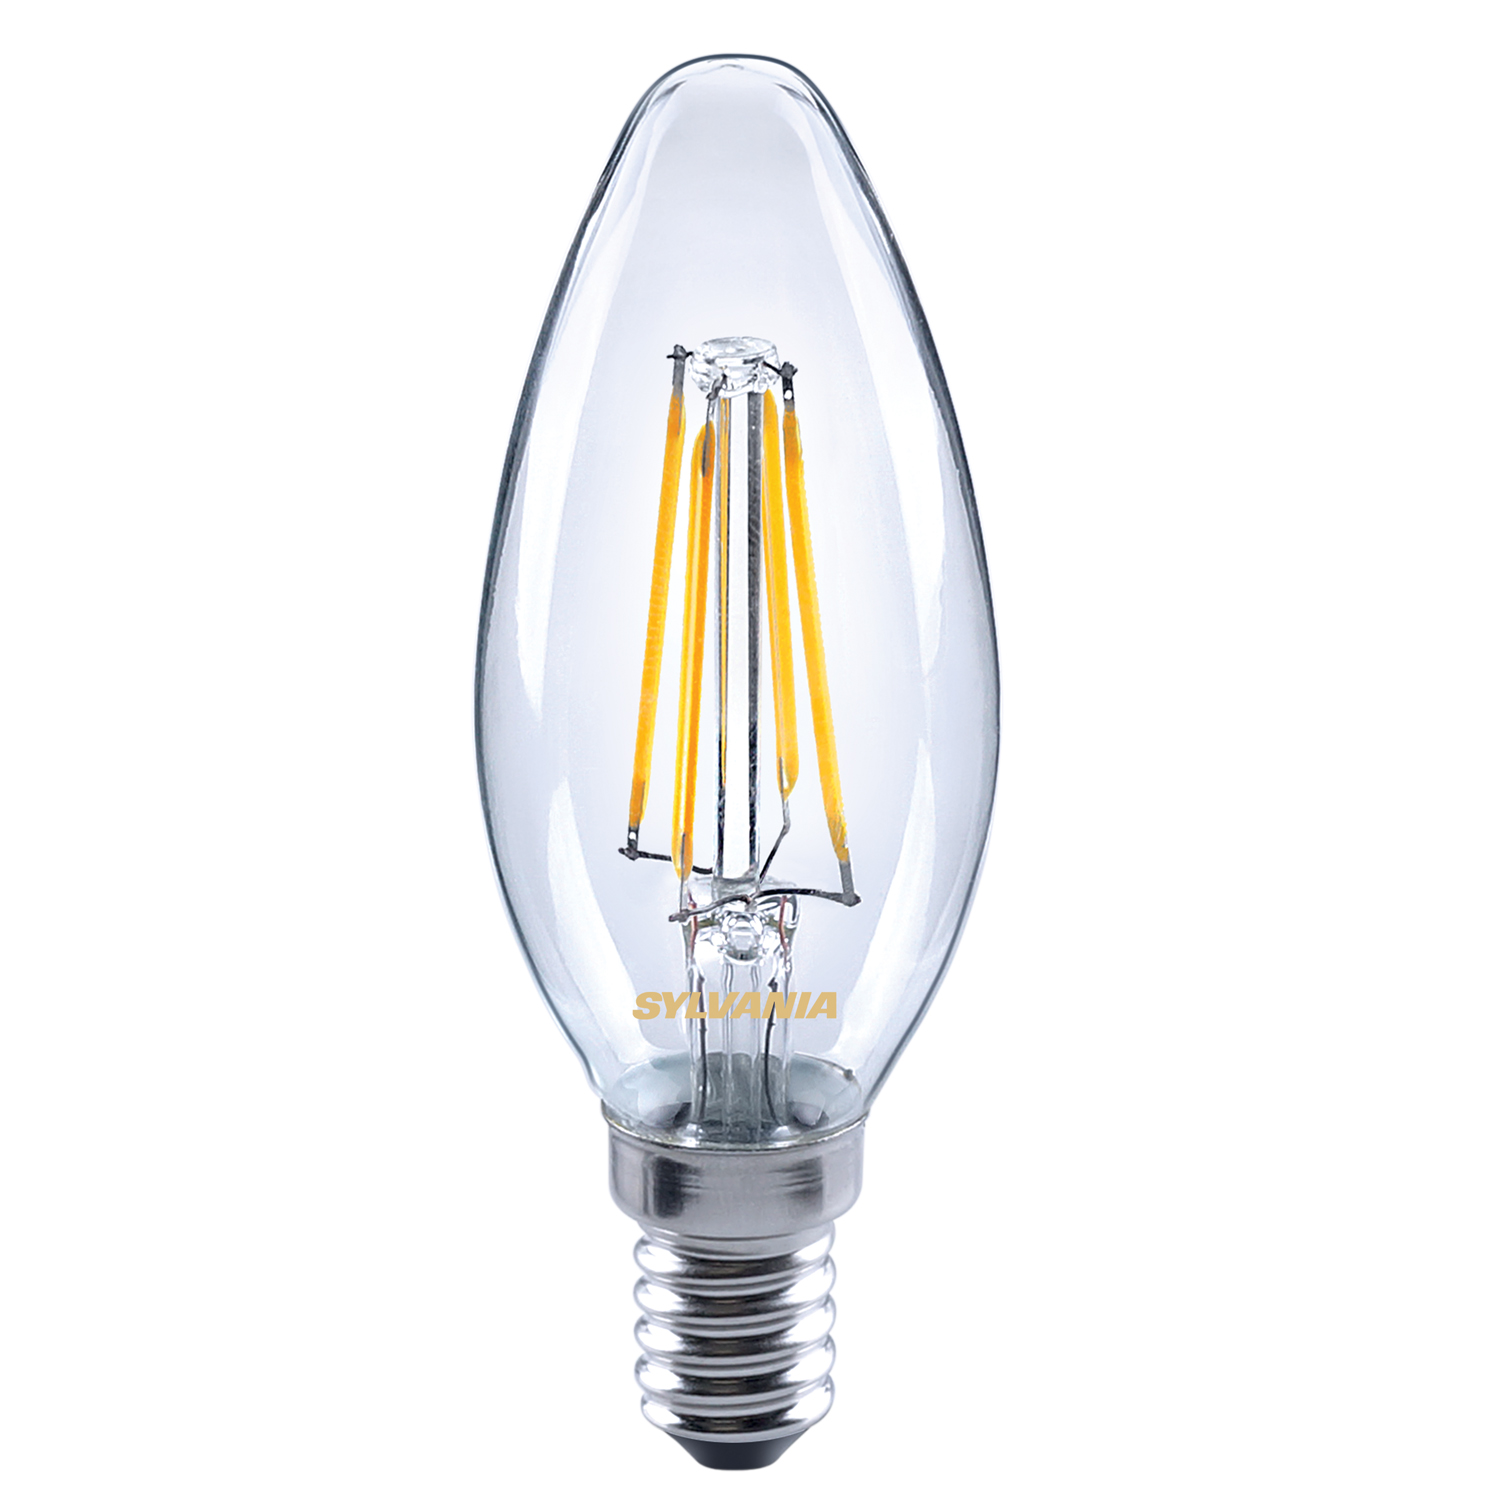 Sylvania 4.4W = 40W 470lm LED traditional candle light bulb E14 SES warm white